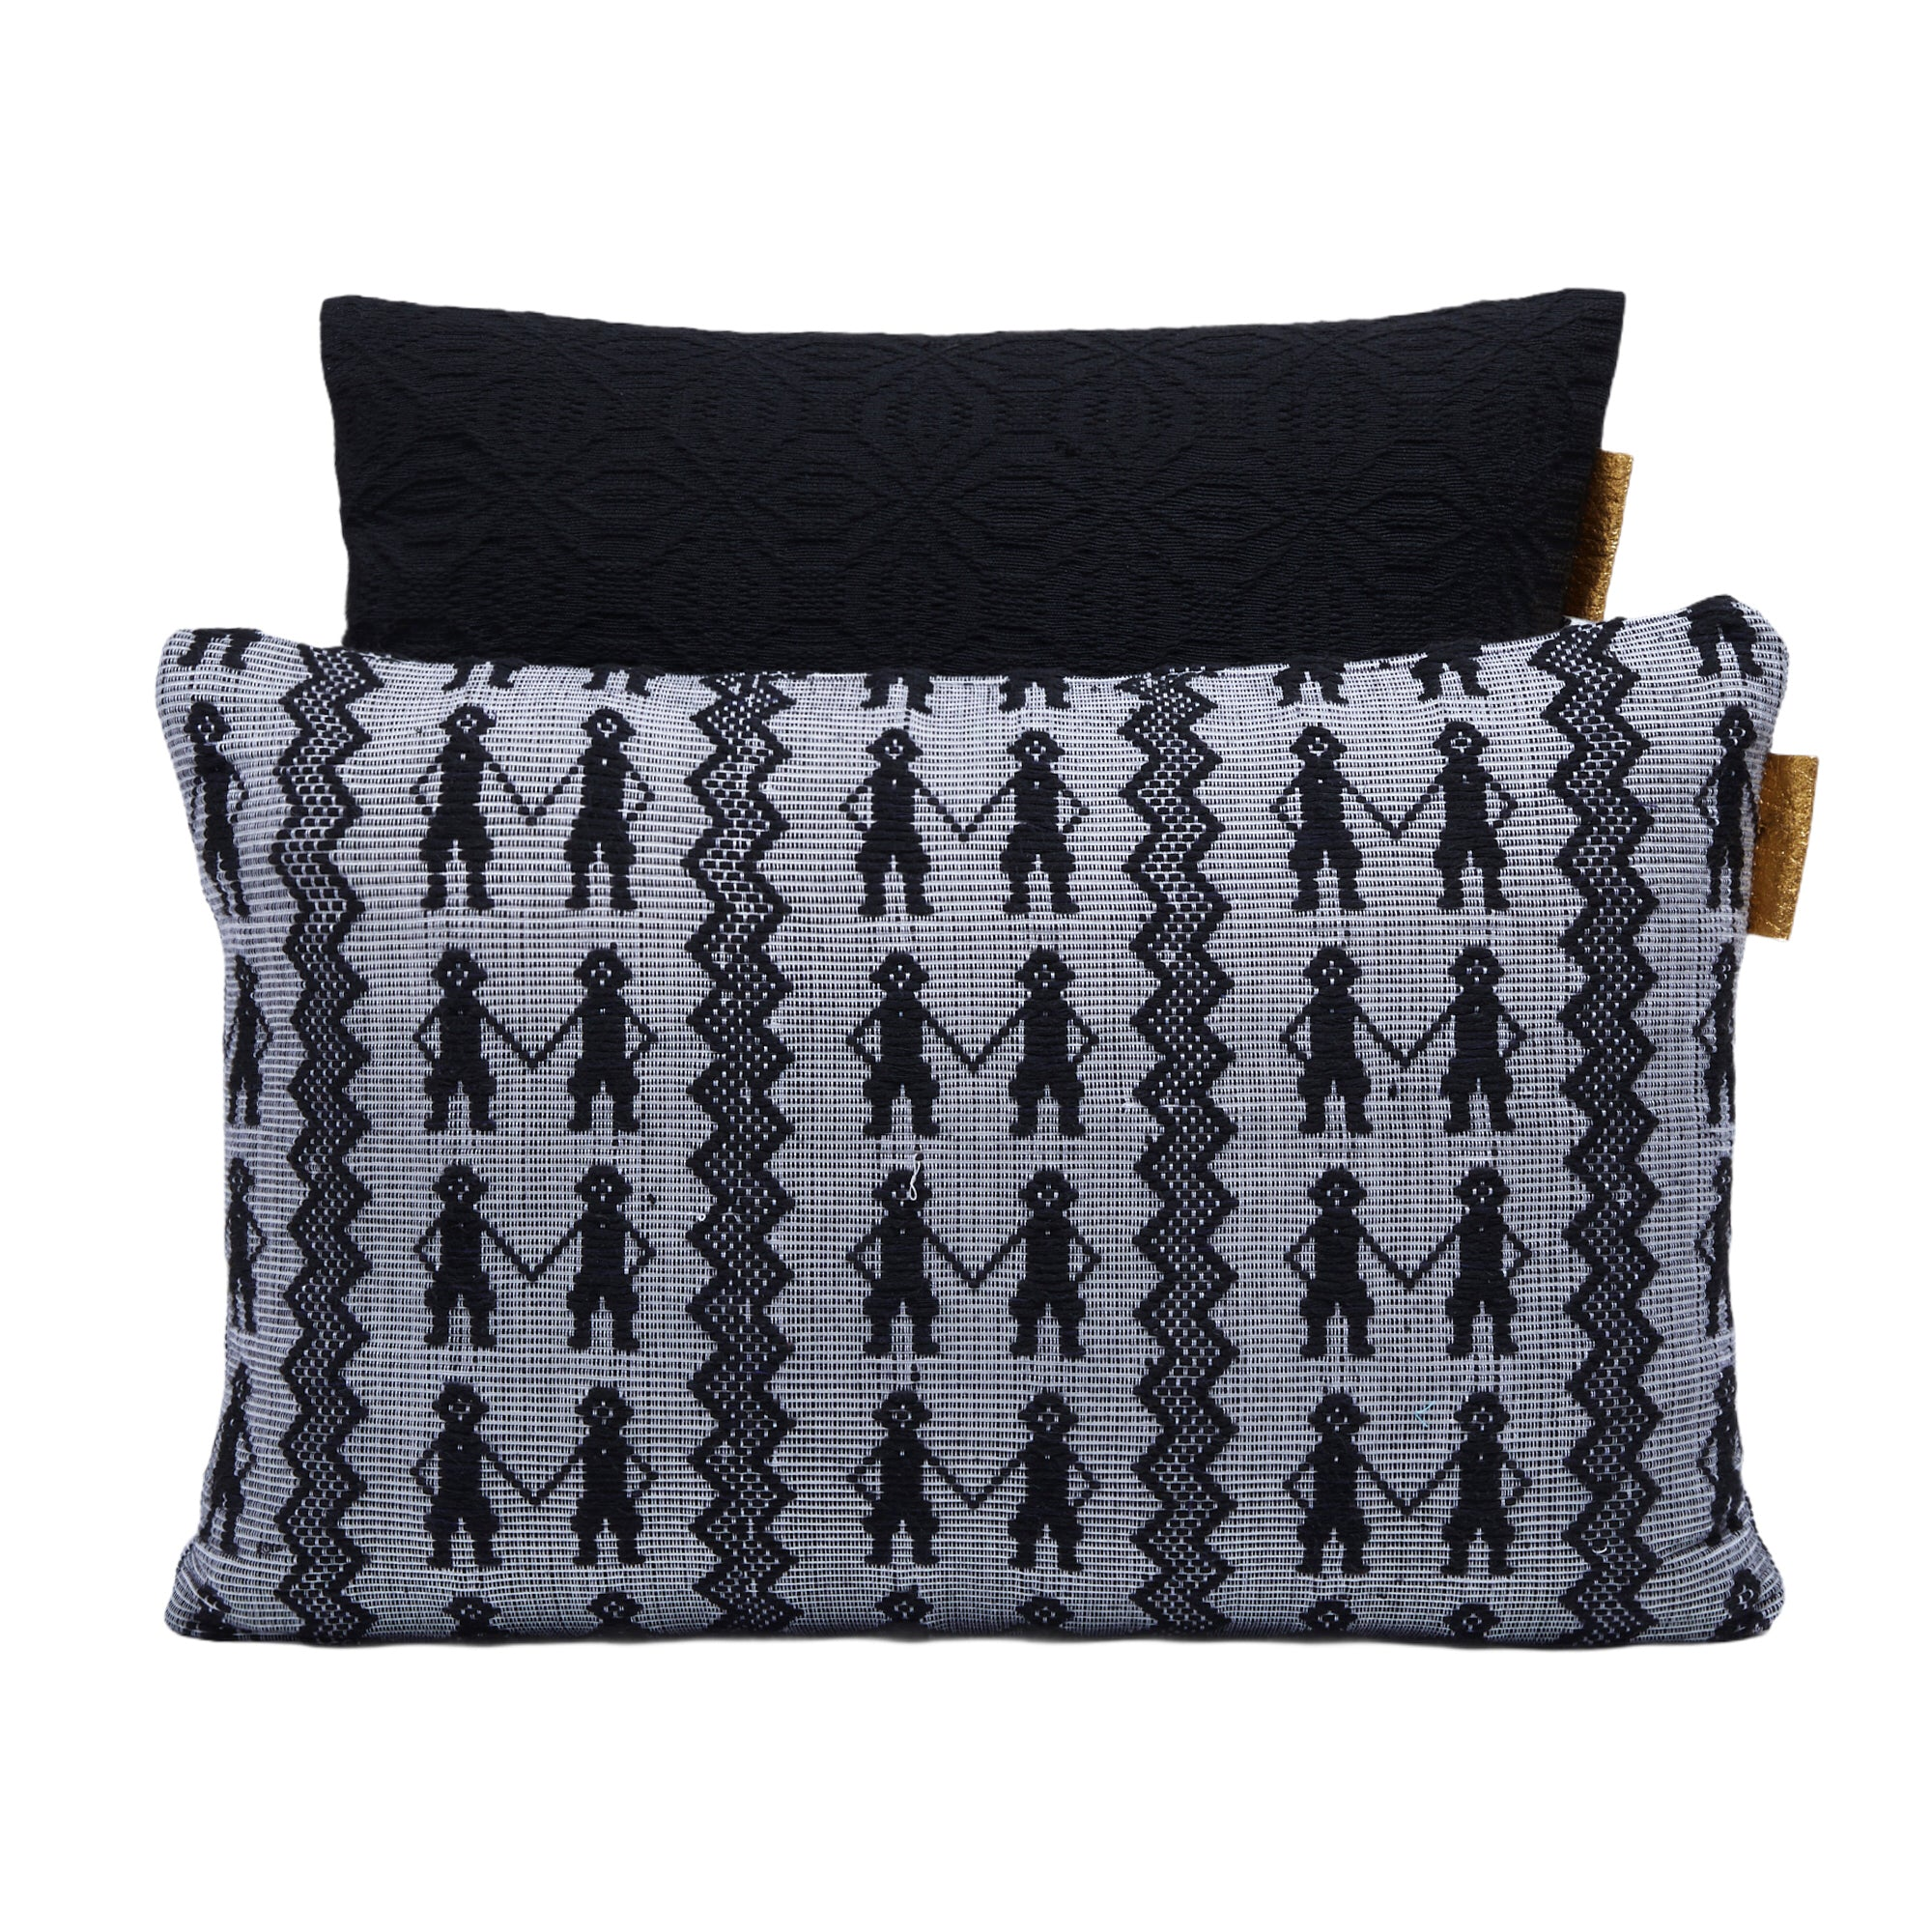 Cushion Cover Black & Kibin Kibin